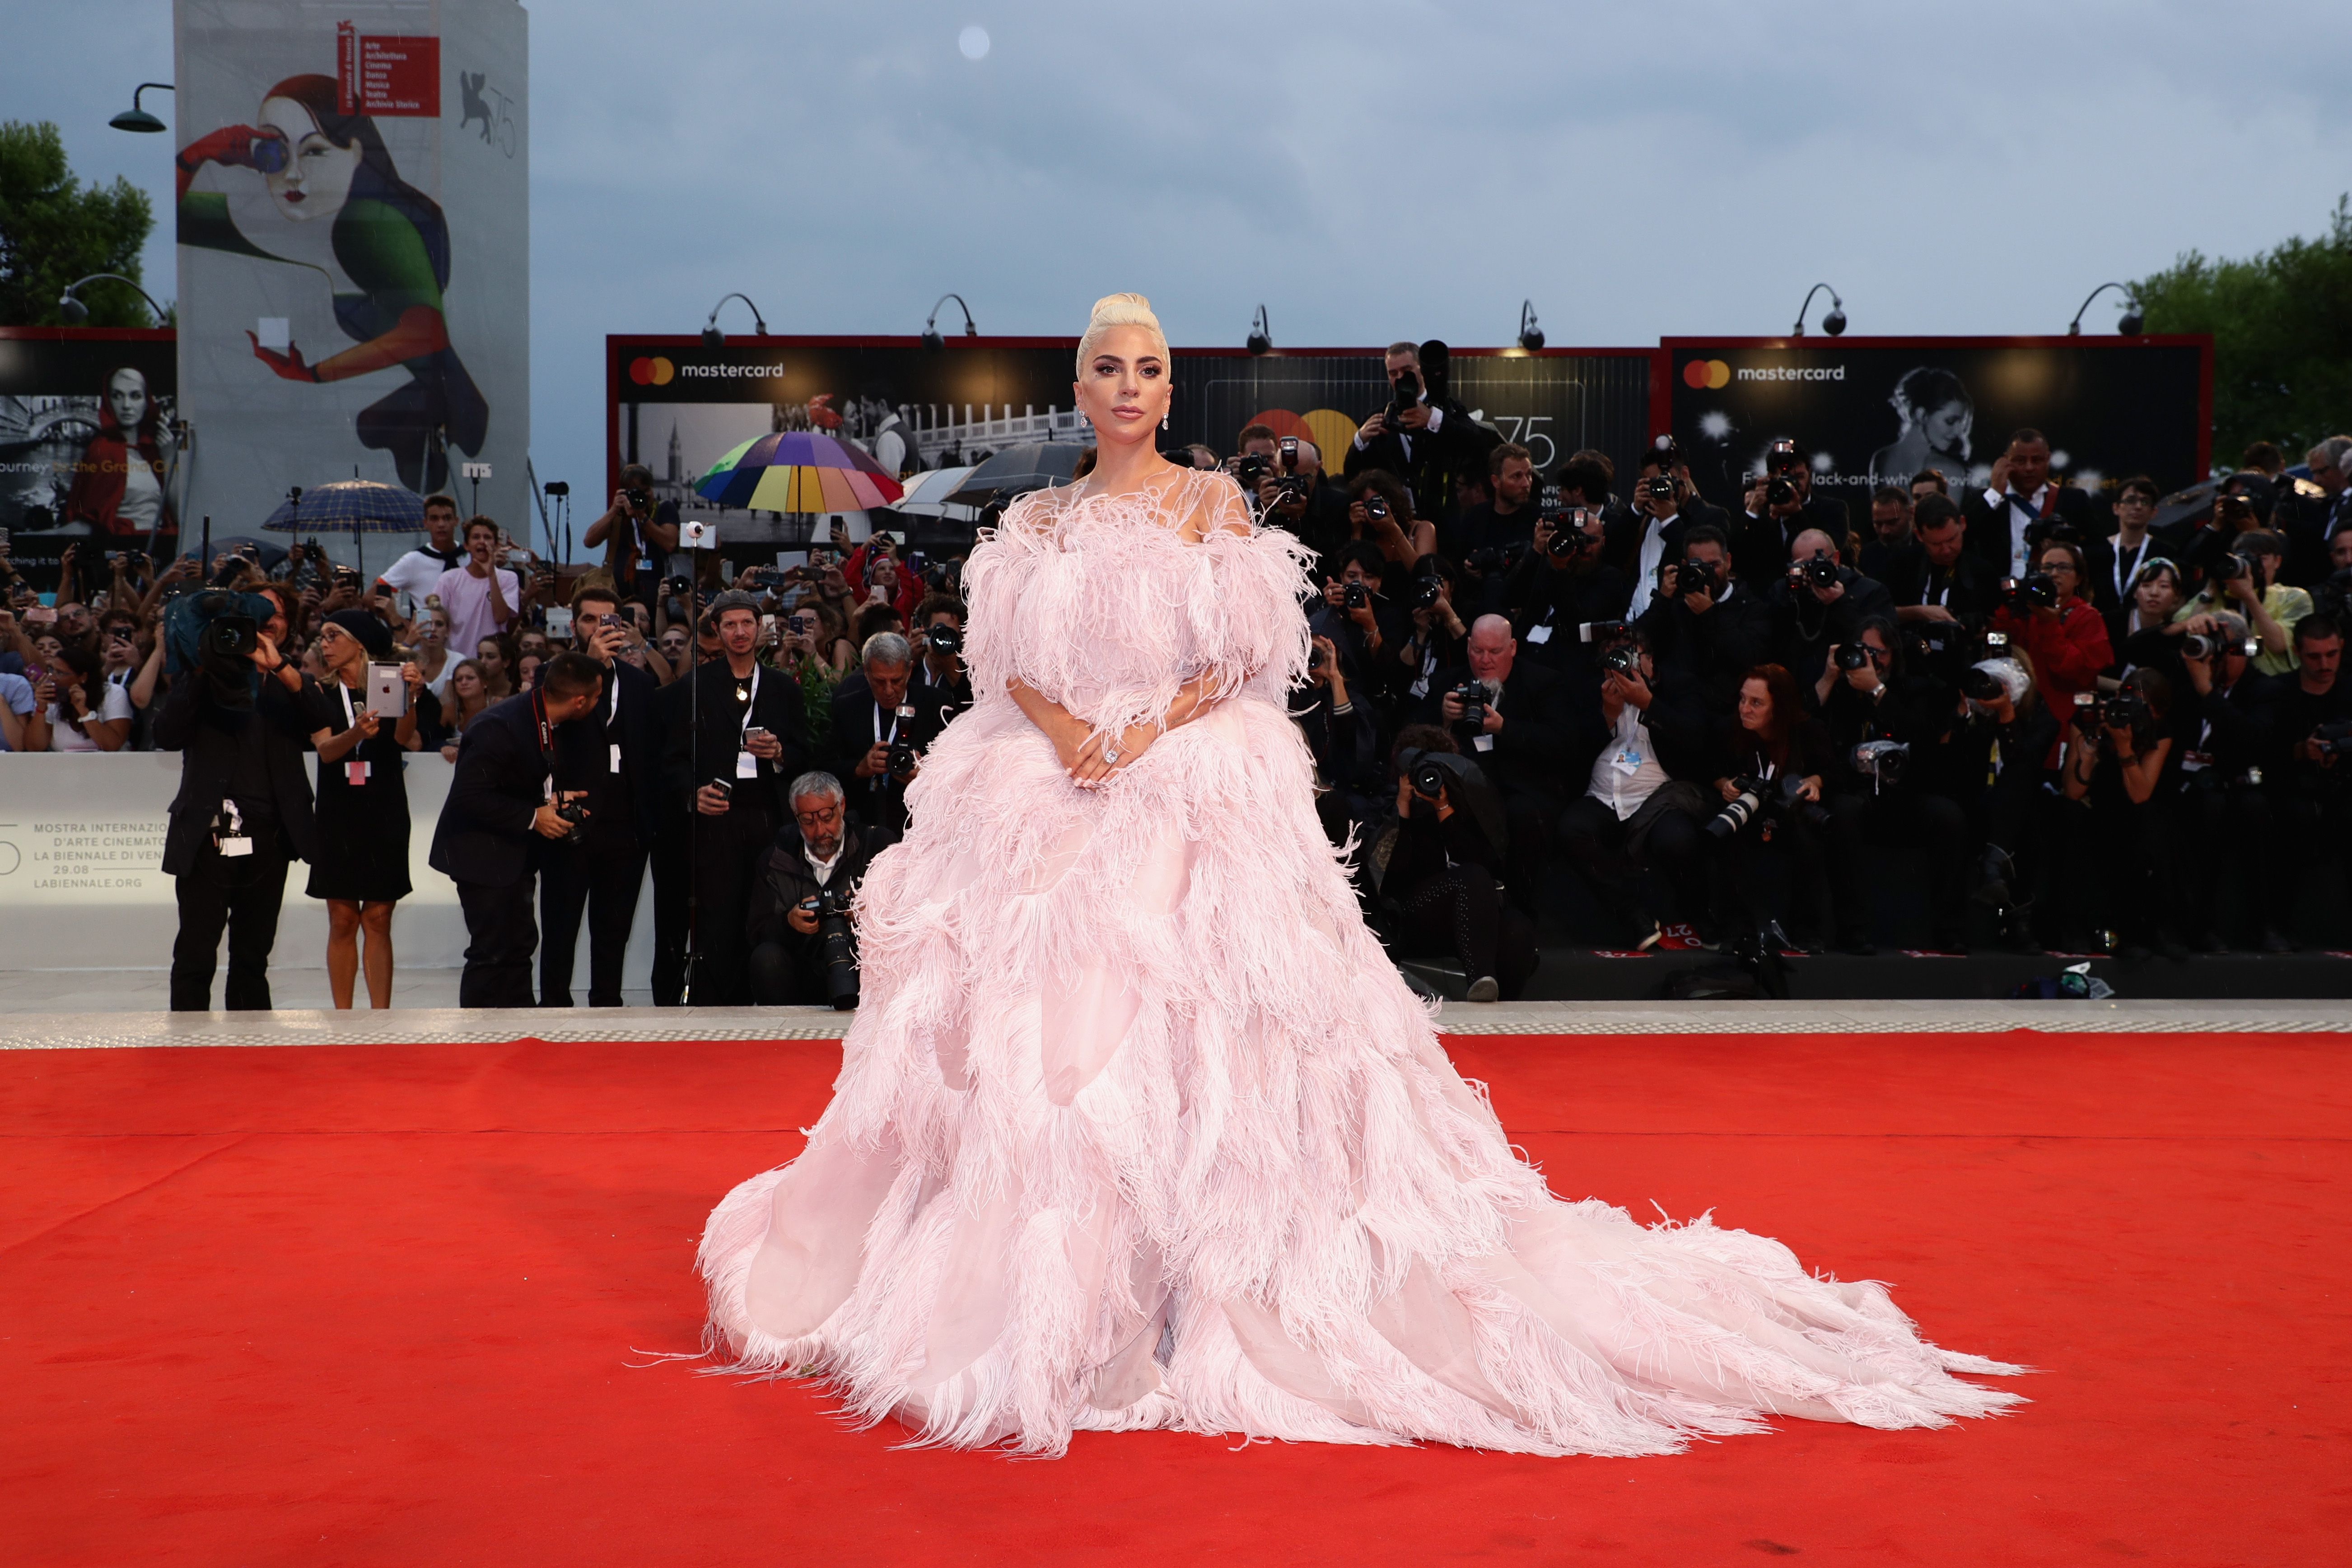 The triple threat hit the red carpet for the premiere of A Star Is Born at the Venice Film Festival wearing a stunning pink feathered Valentino Haute Couture Gown designed by Pierpaolo Piccioli.